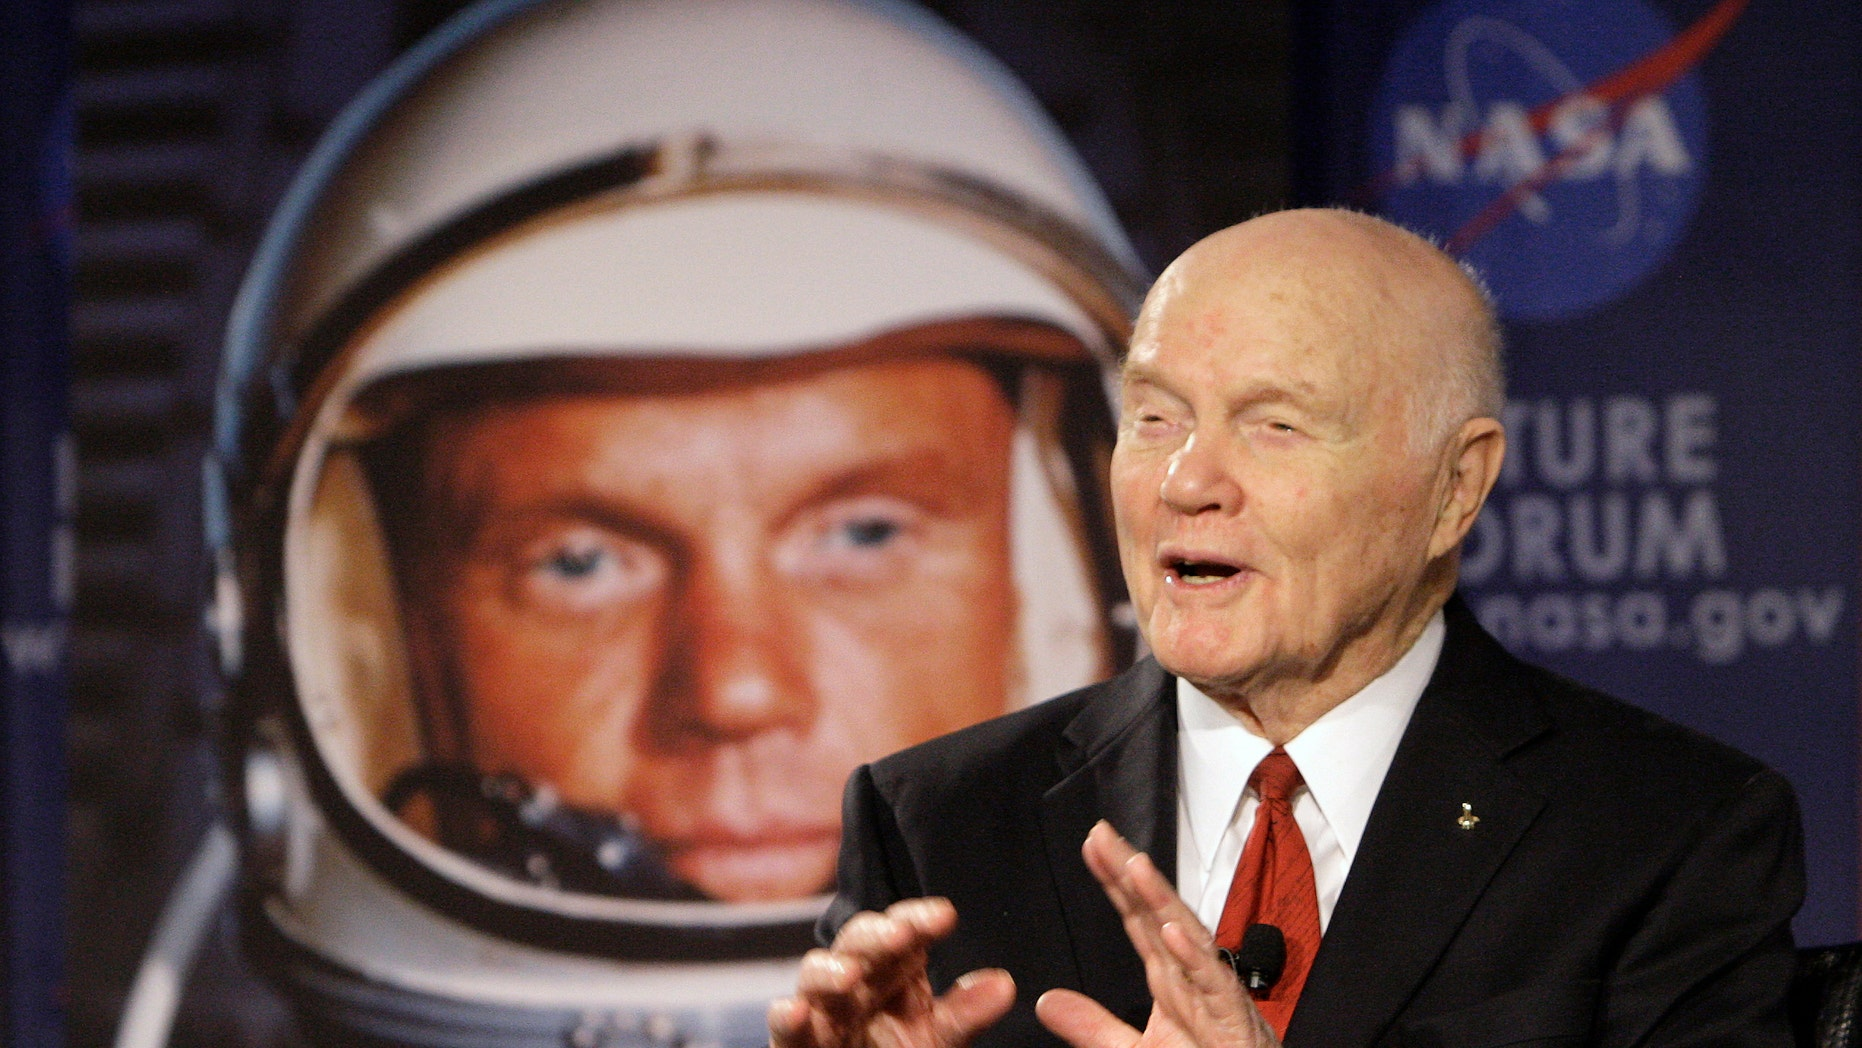 """FILE - In this Feb. 20, 2012, file photo, U.S. Sen. John Glenn talks with astronauts on the International Space Station via satellite before a discussion titled """"Learning from the Past to Innovate for the Future"""" in Columbus, Ohio.  (AP Photo/Jay LaPrete, File)"""